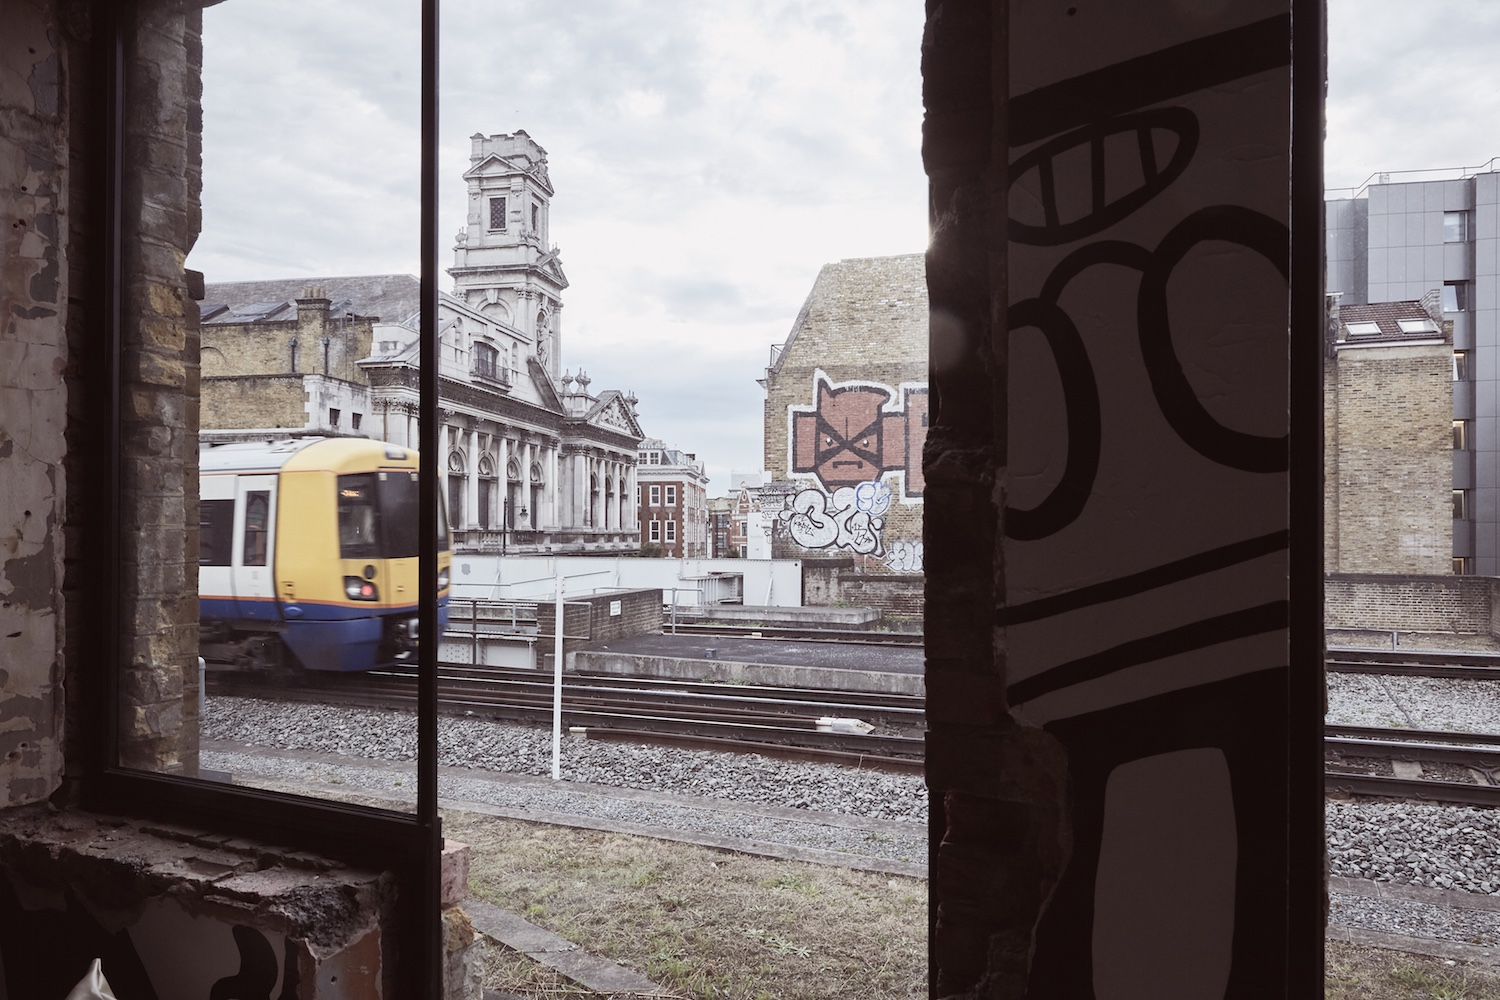 shoreditch-platform-lounge-view-to-trainline-from-old-platform-with-train